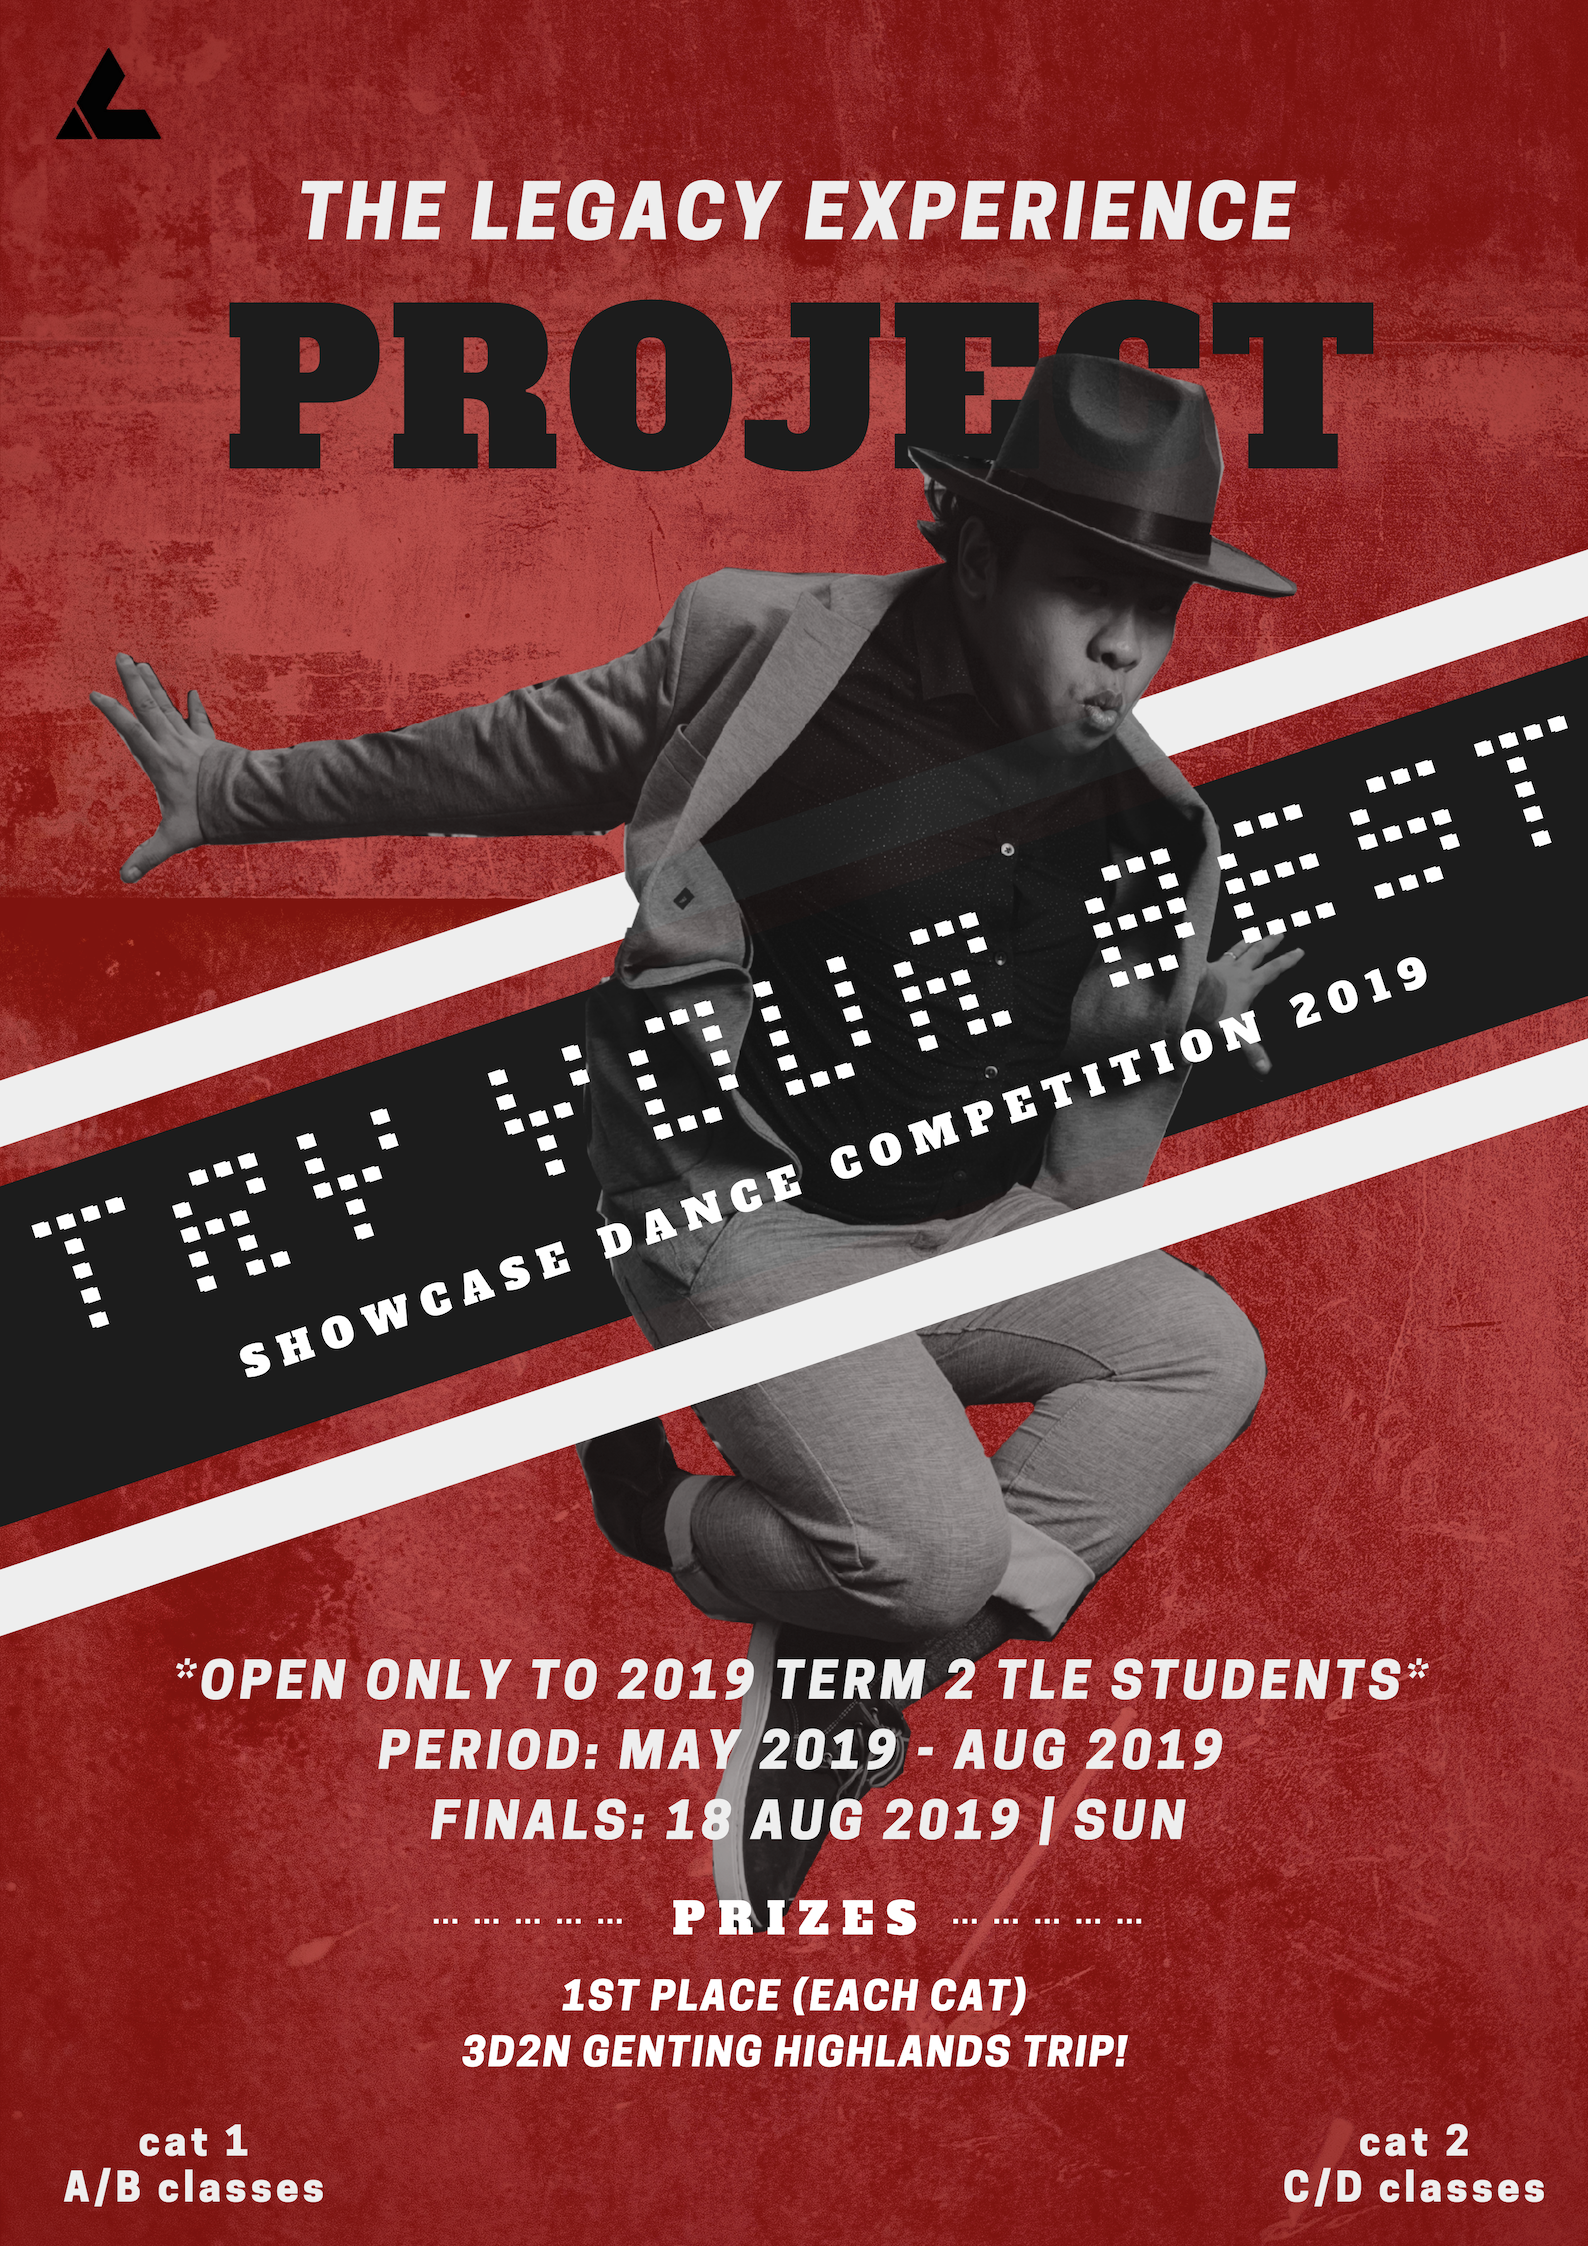 Bringing to THE LEGACY EXPERIENCE for the very first time, Try Your Best Showcase (TYBS) Dance Competition is our latest addition to the TLE programme to provide students with a competitive platform to challenge themselves in creating works of their own and experience what it is like to train with their very own dance crew.  Students enrolling in TLE for May - Aug 2019 will be joining TYBS as part of their project for the term. They will be allocated into groups of 5 to 9 members and each group will have a mentor assigned by the company to help them prepare for their routine which will be performed in an internal showcase on 18 Aug 2019.  Rules & Regulations of the competition will be uploaded on this site by 28th February 2019.